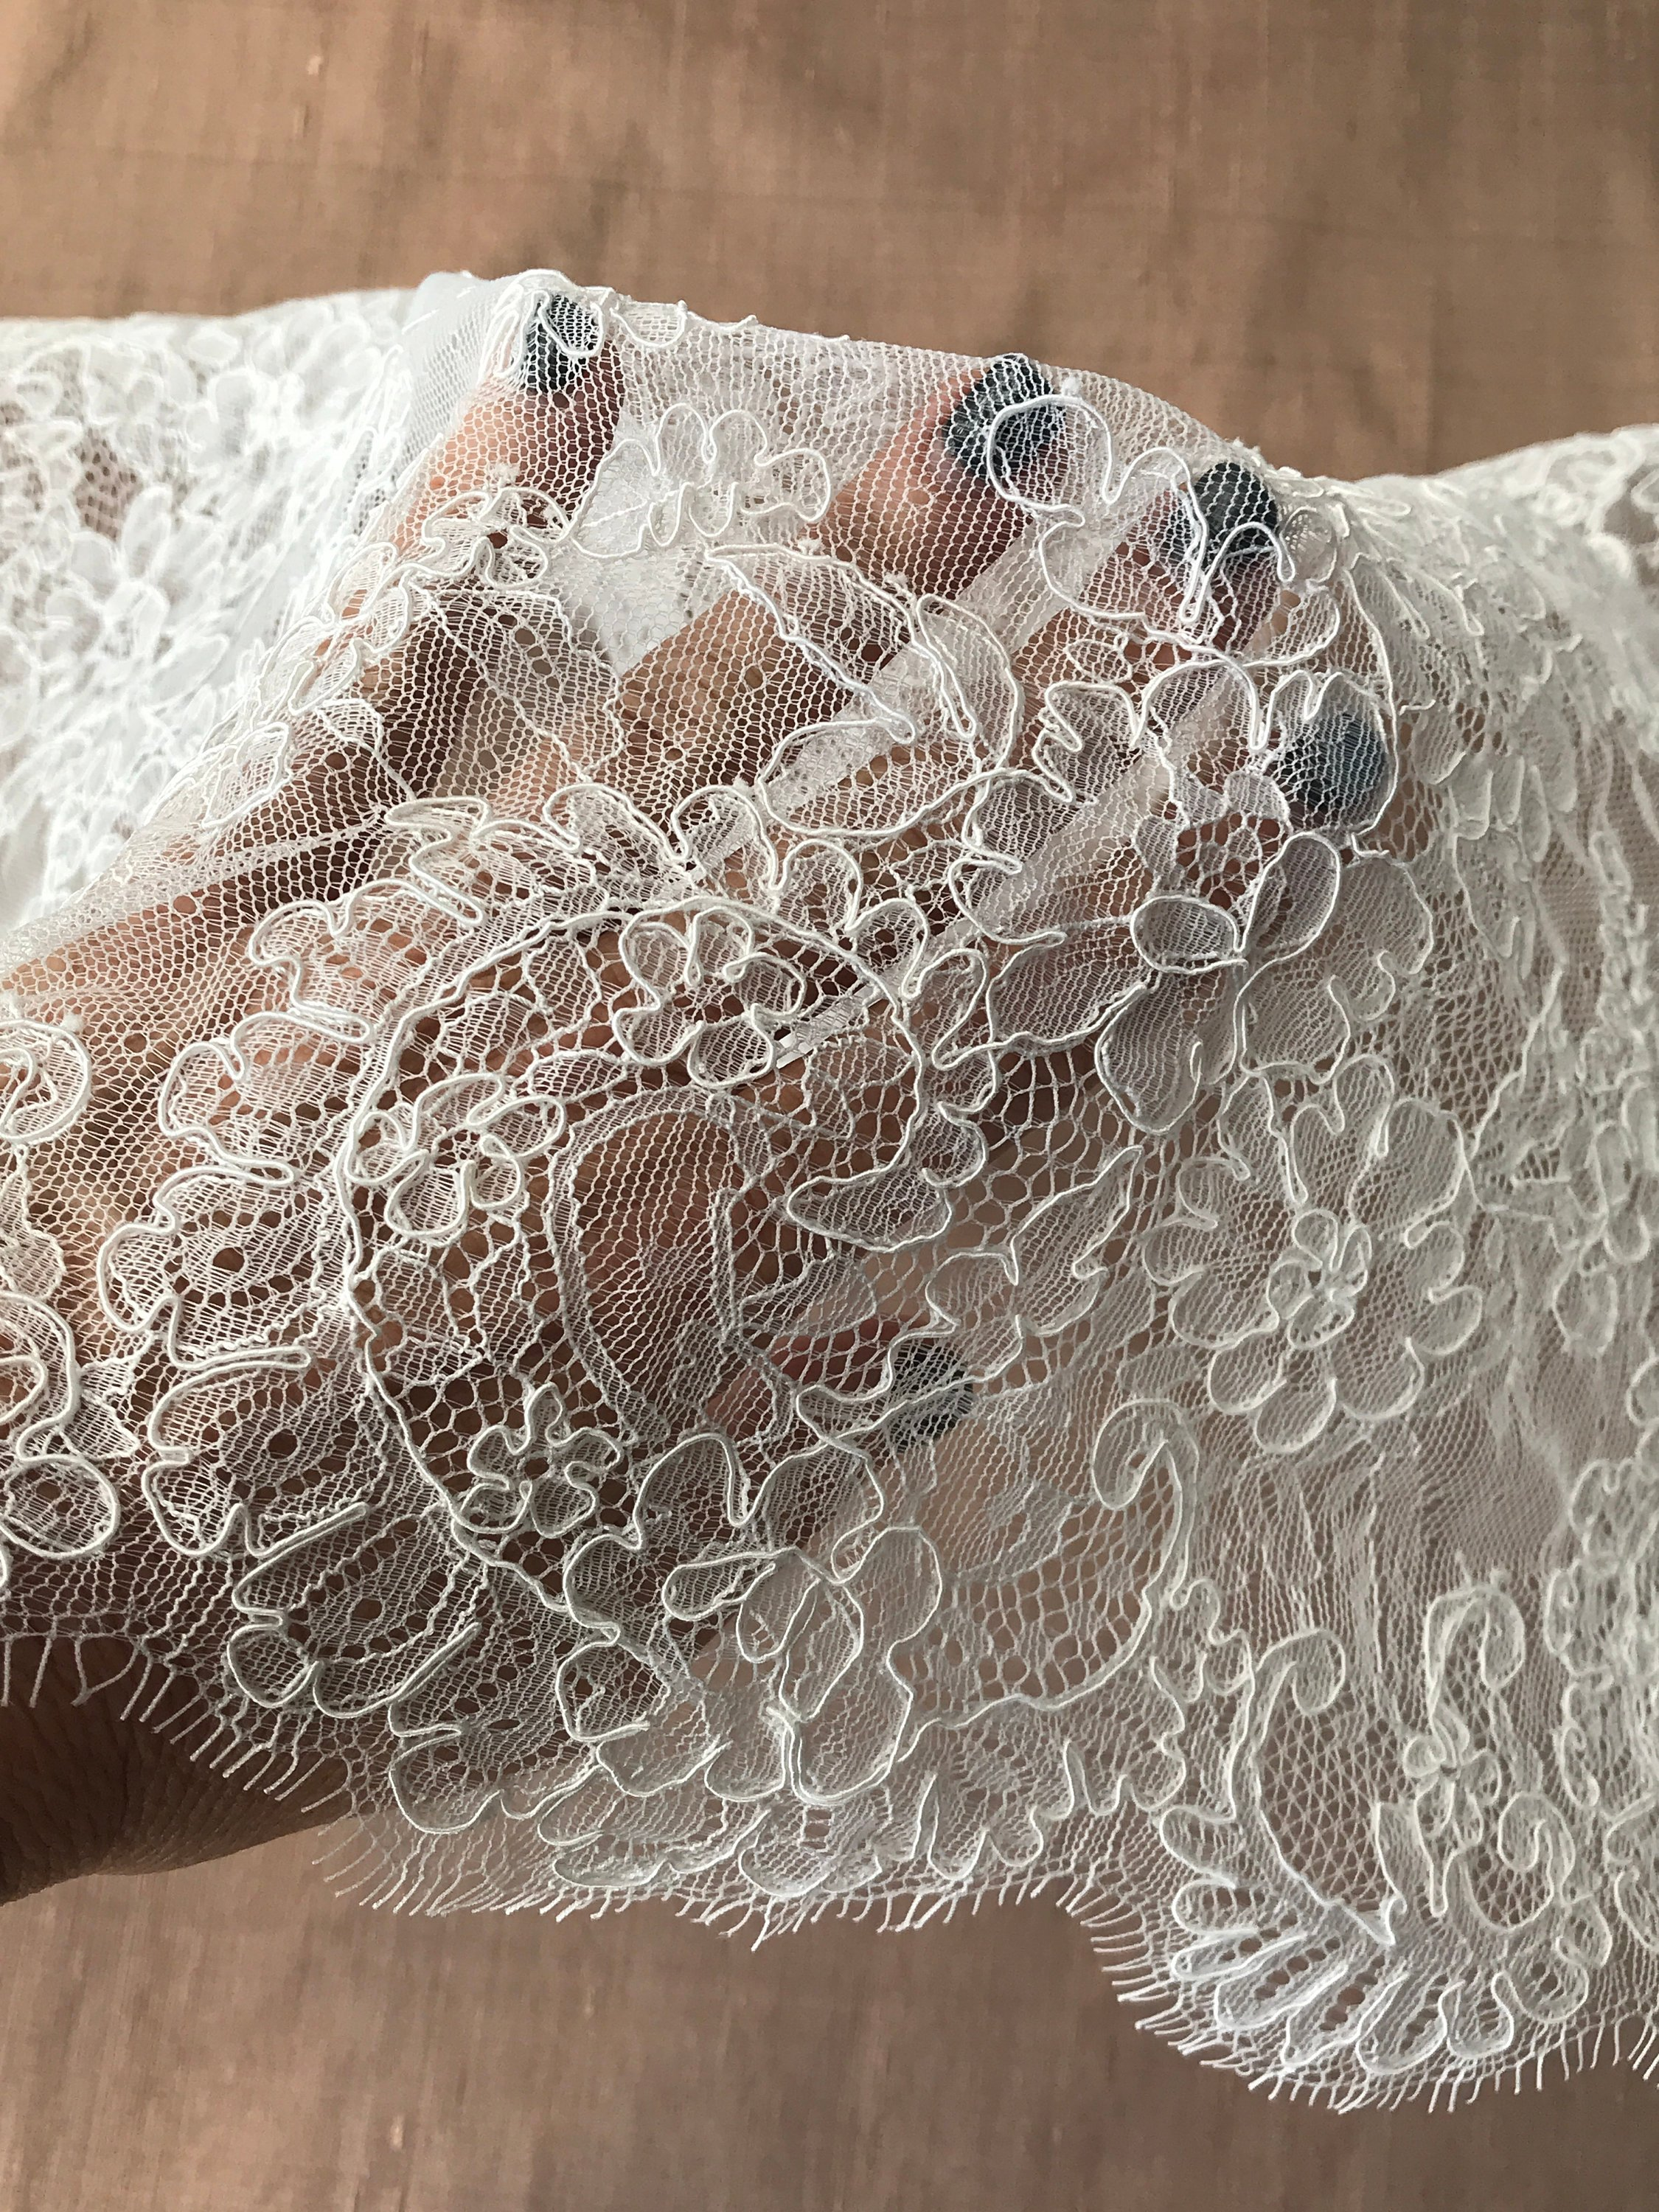 off white ivory bridal lace corded border lace scallop edge both sides with eyelashes veiling 40cm wide